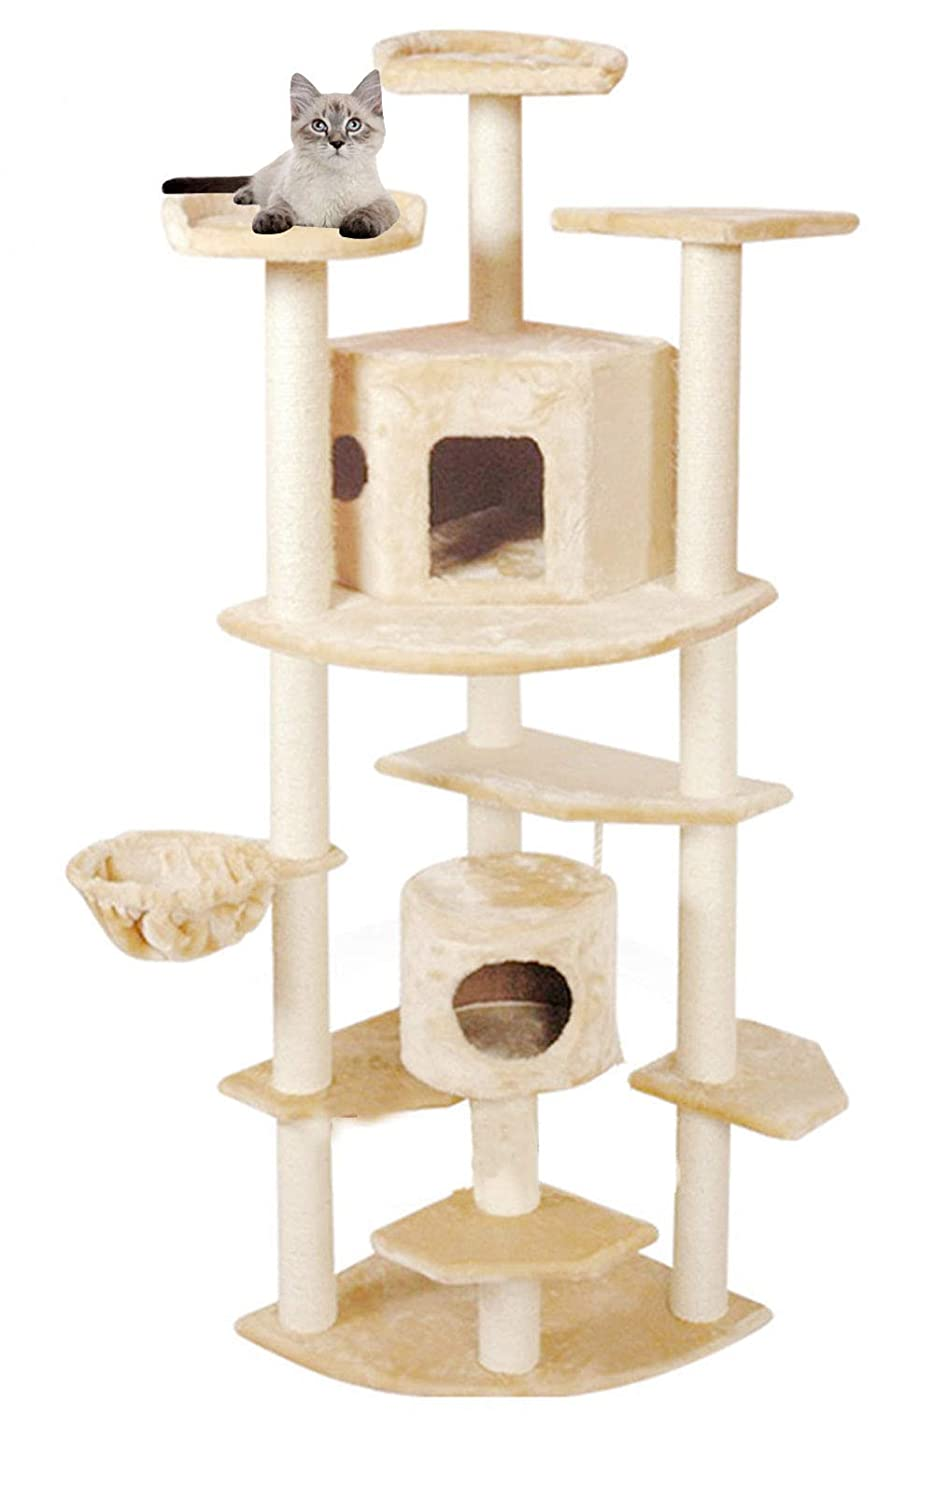 Cat Tree Condo Furniture Multi-Level Deluxe and Rope Kittens Activity Tower Pet Kitty Playhouse with Cat Trees Hammock